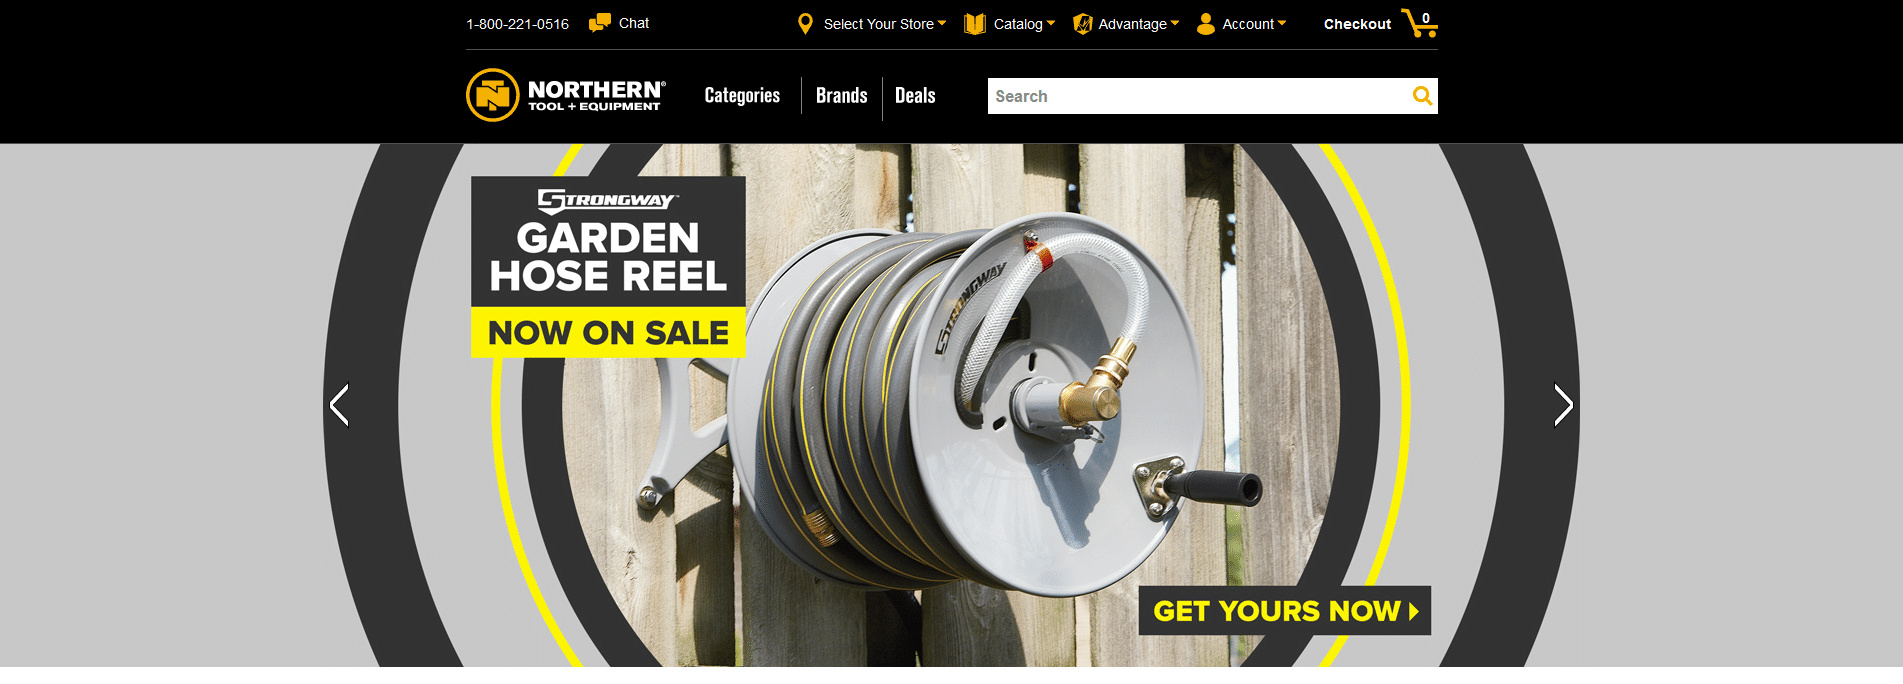 Northern Tool online